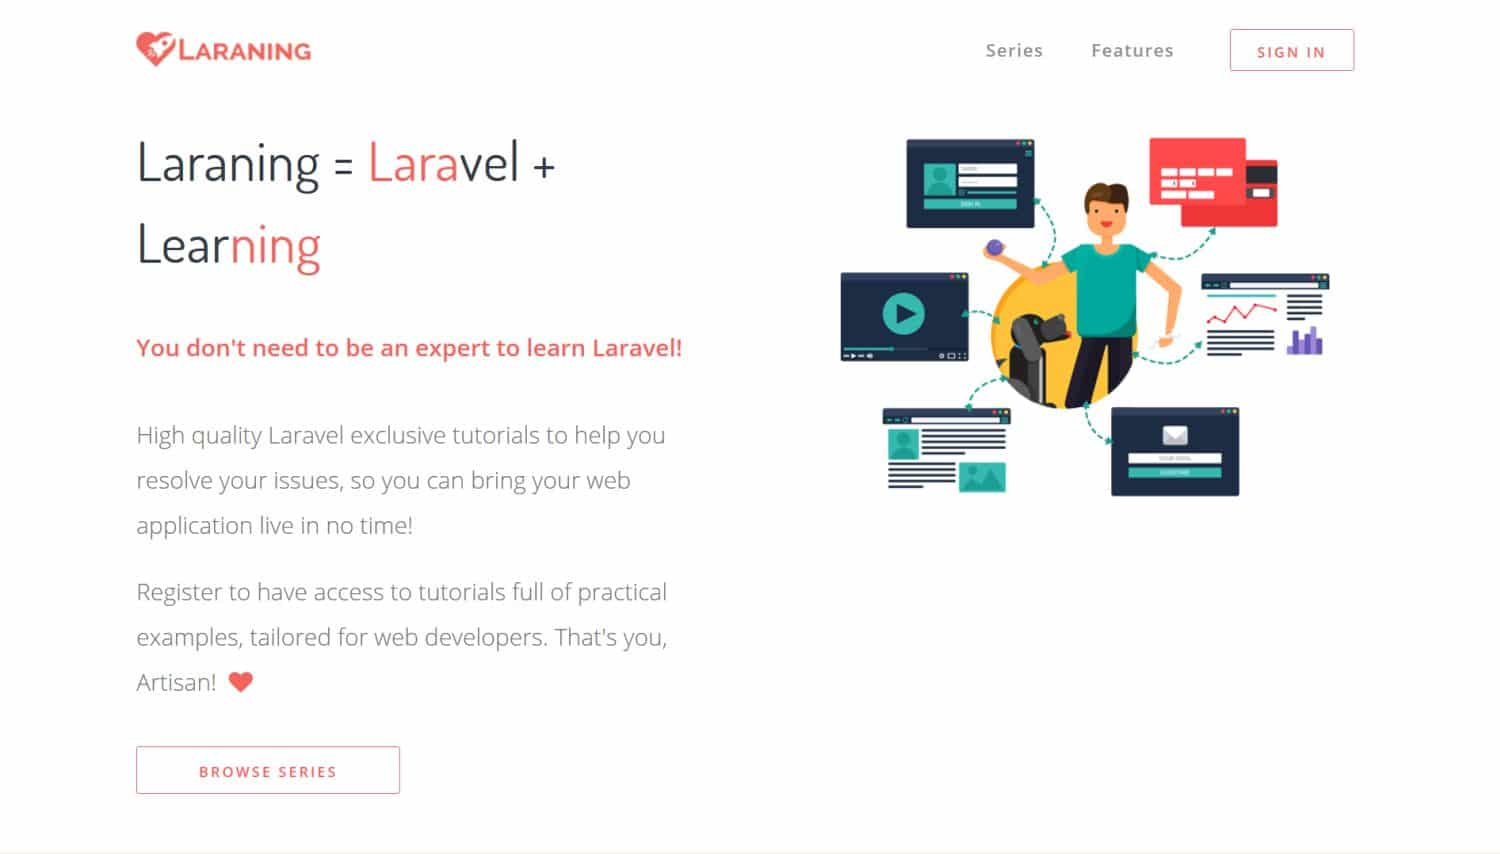 Laraning - Laravel tutorial